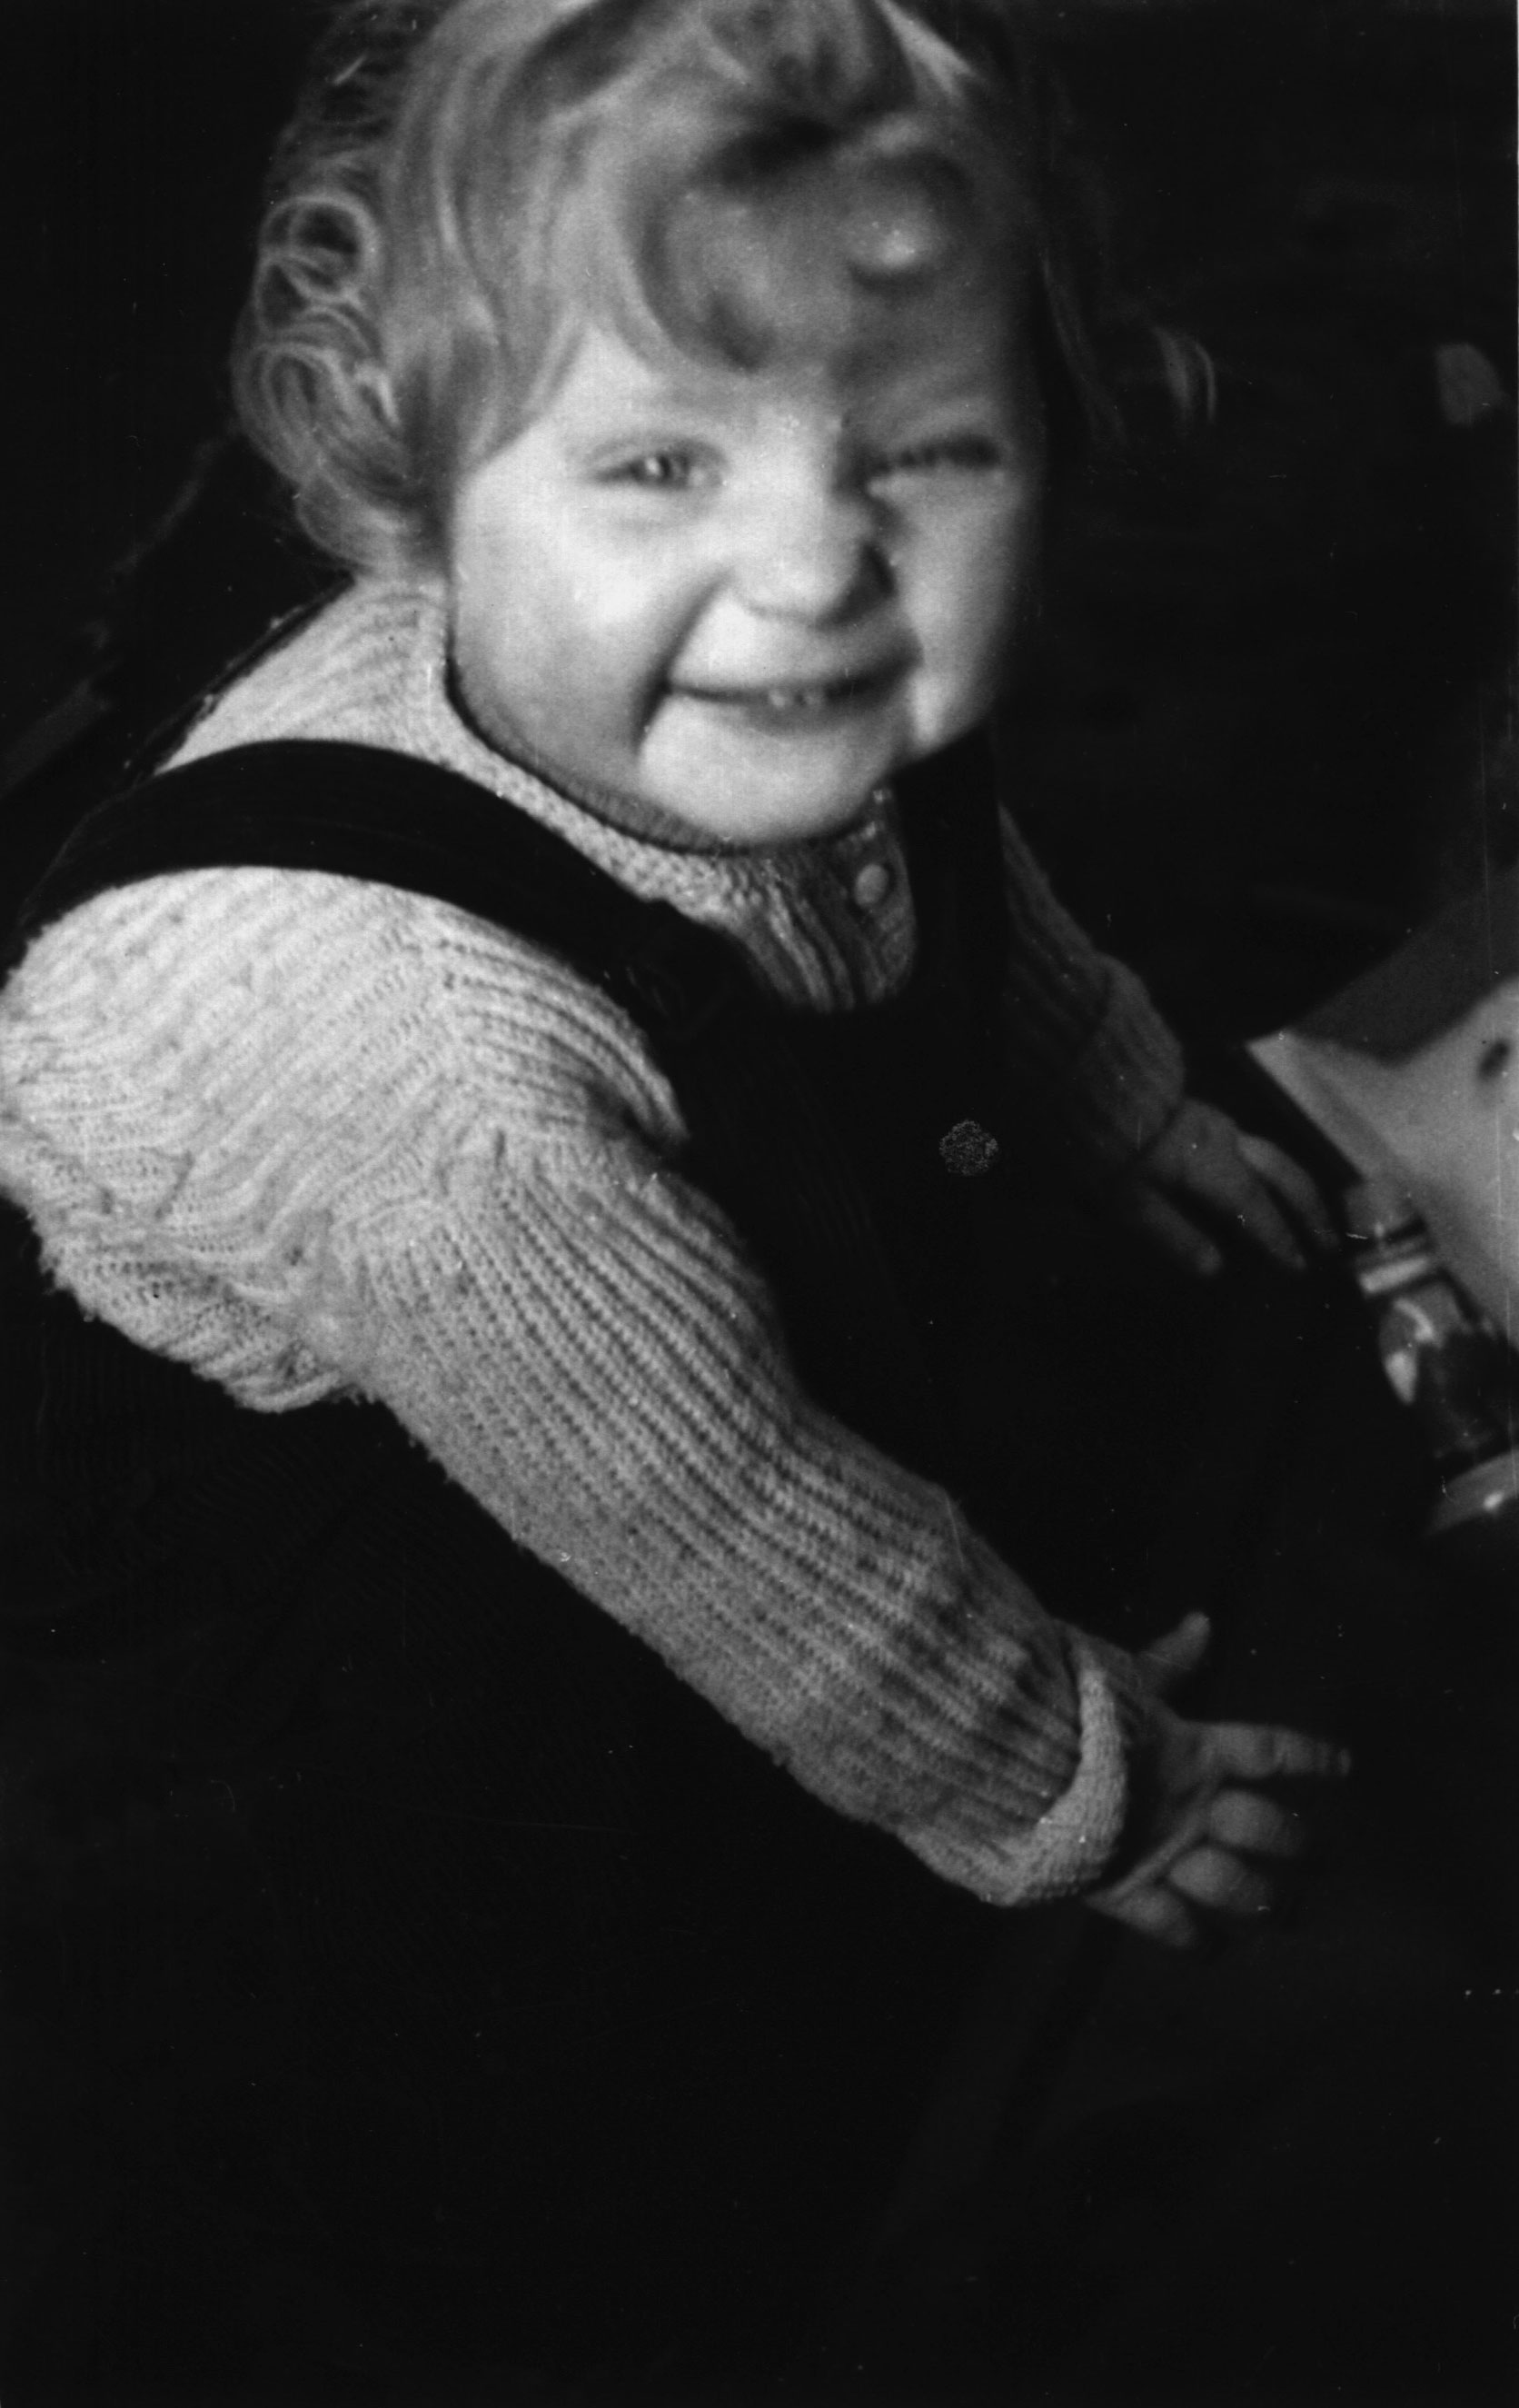 Angela Kasner, at age one and a half.